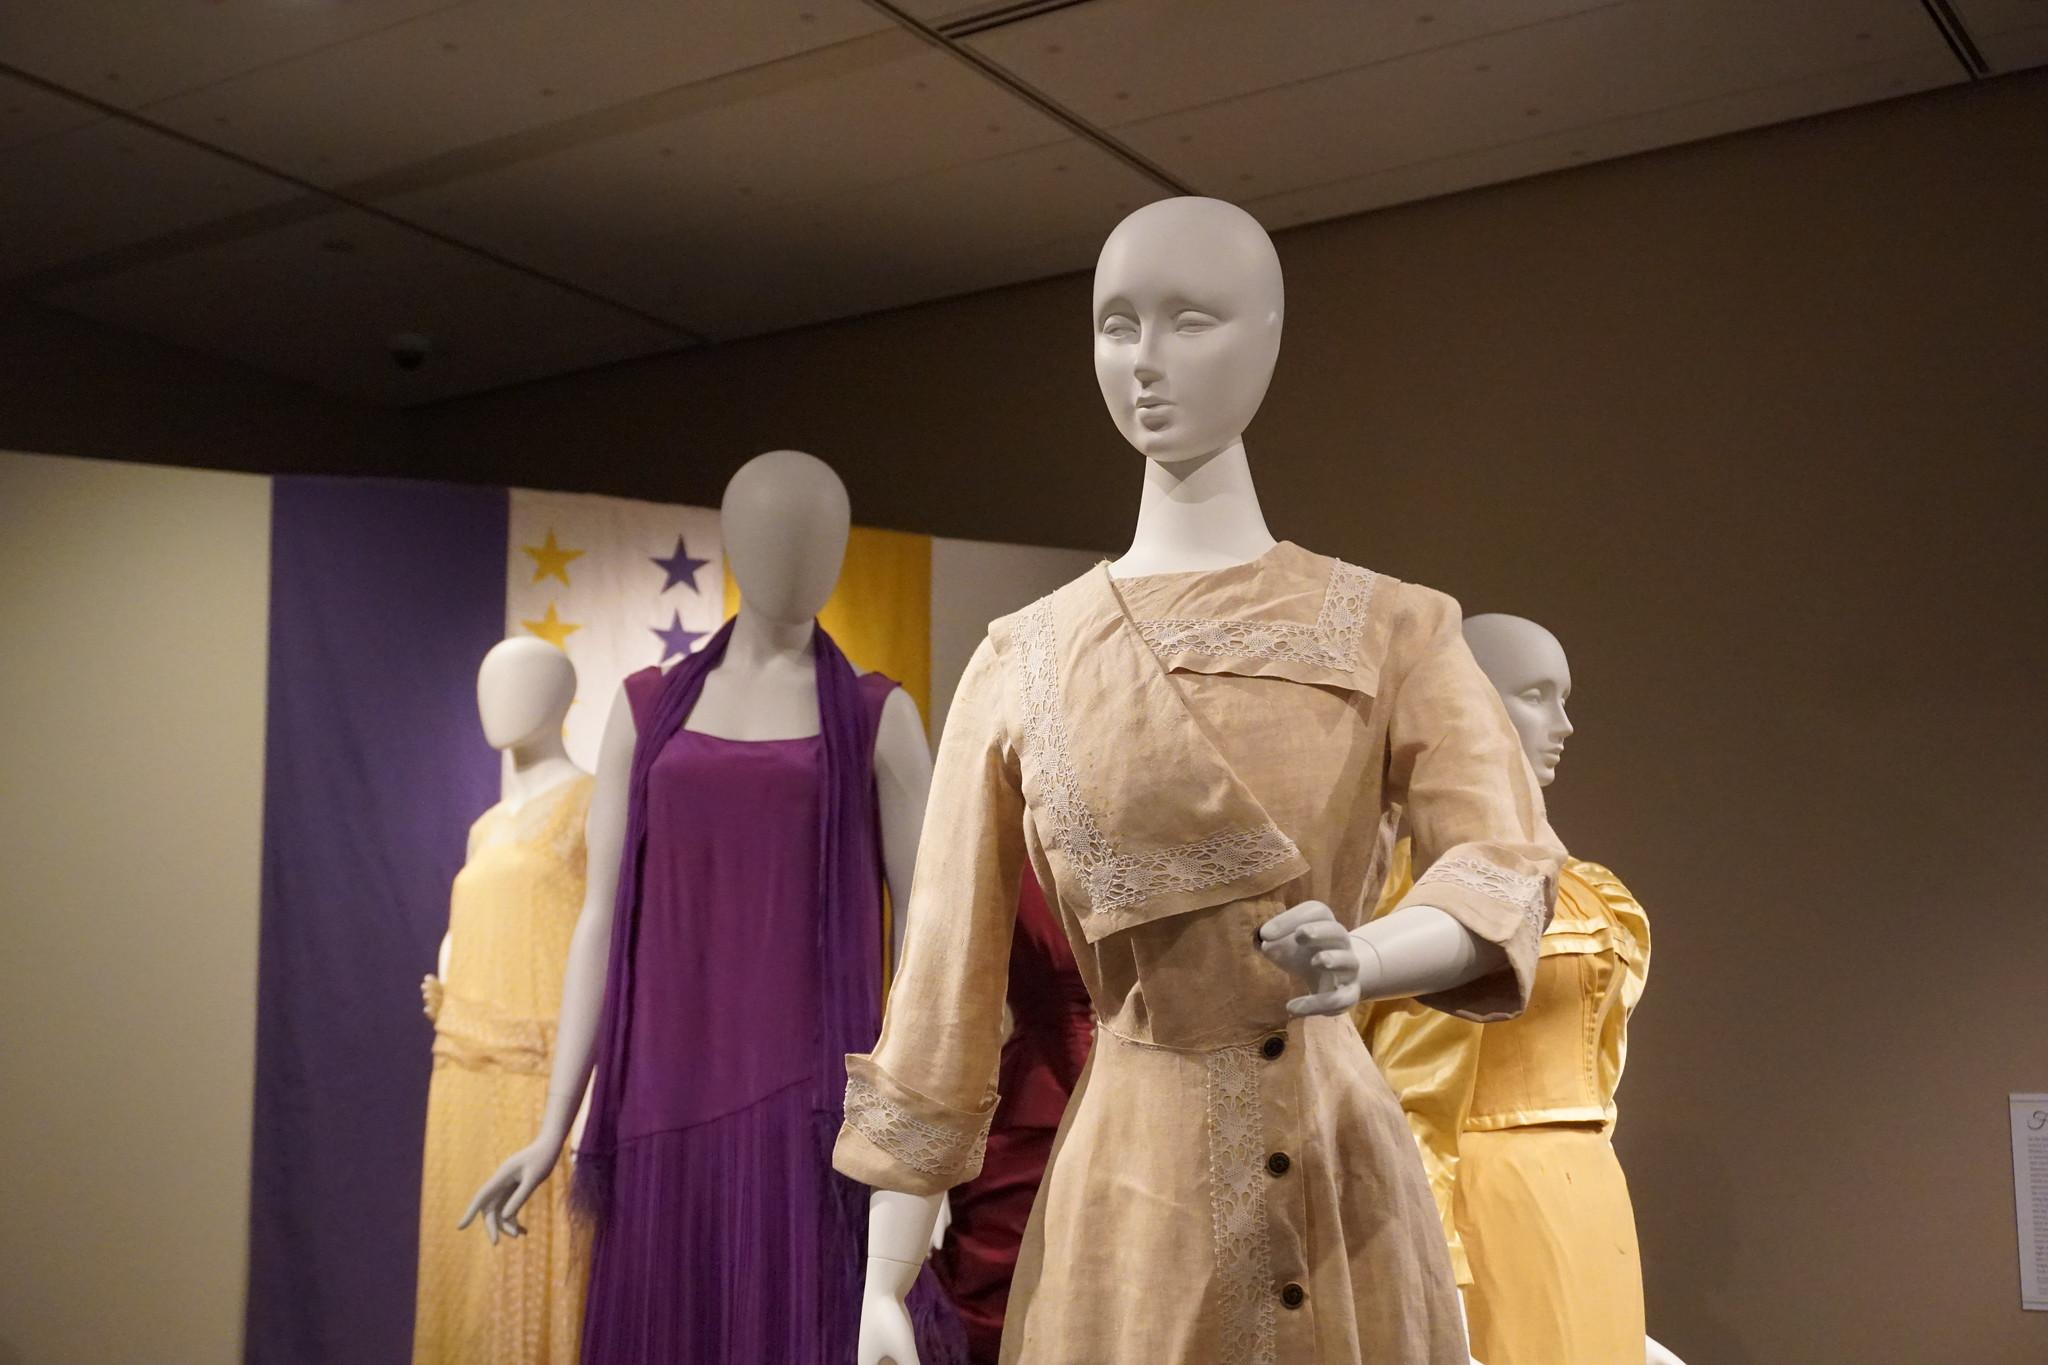 The R.E.S.P.E.C.T. the Dress: Clothing and Activism in U.S. Women's History exhibit at the Avenir Museum of Design